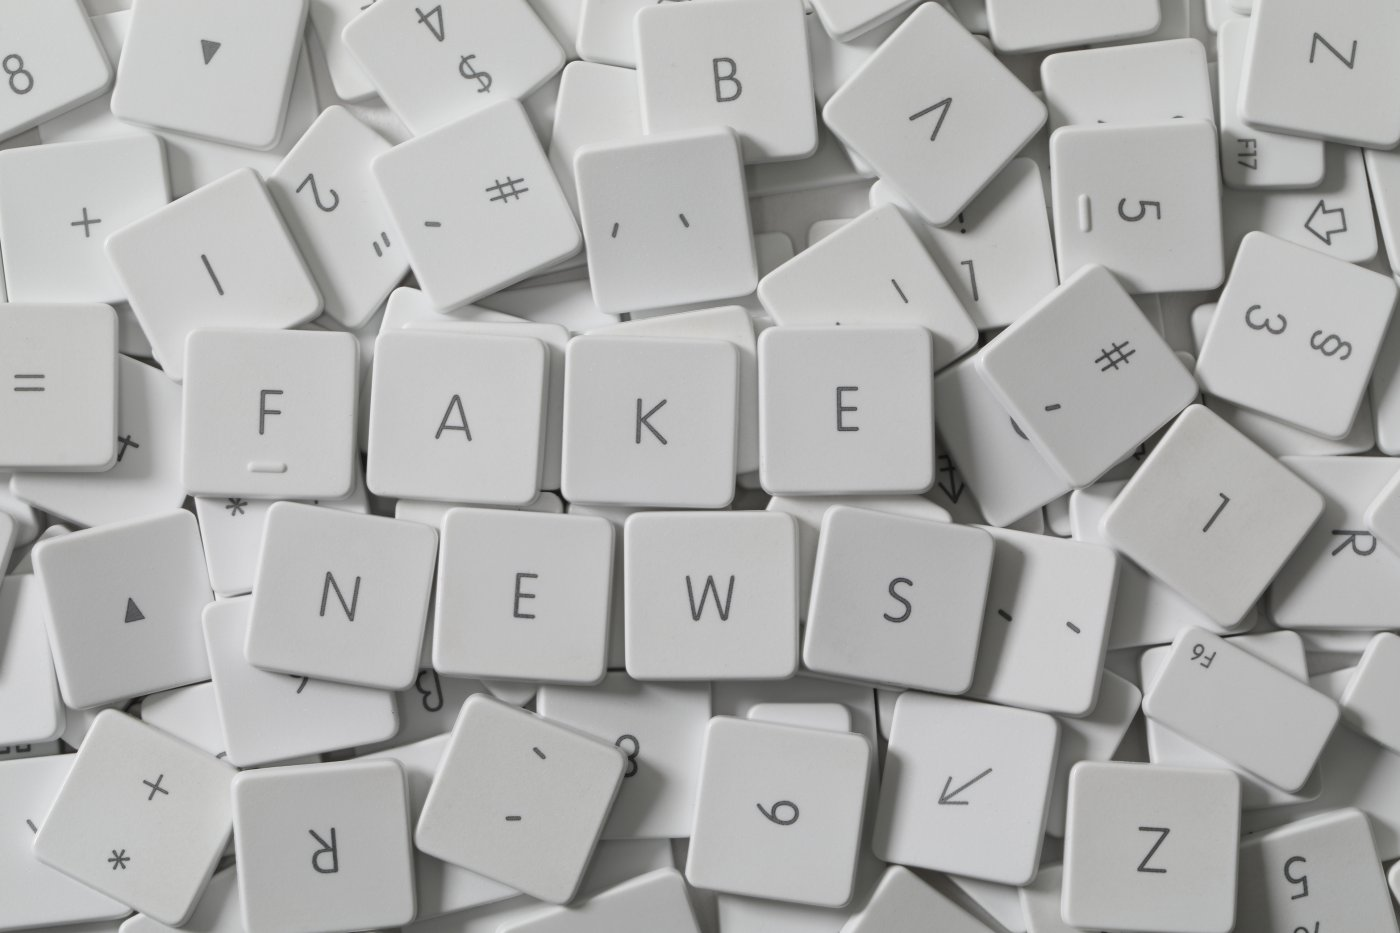 letras-teclado-fake-news